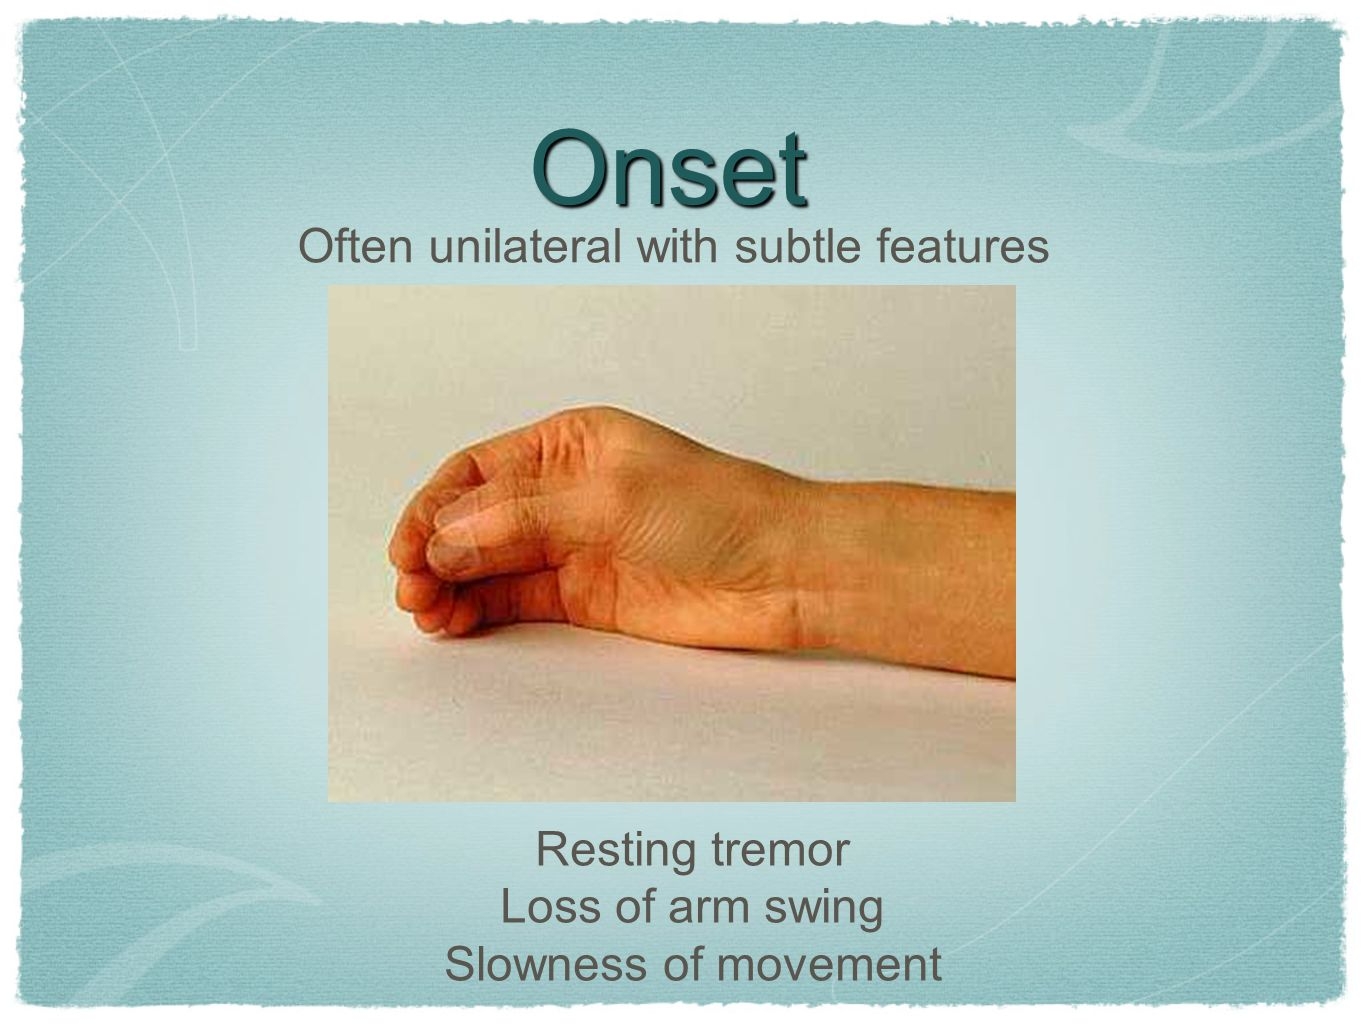 Onset Resting tremor Loss of arm swing Slowness of movement Often unilateral with subtle features